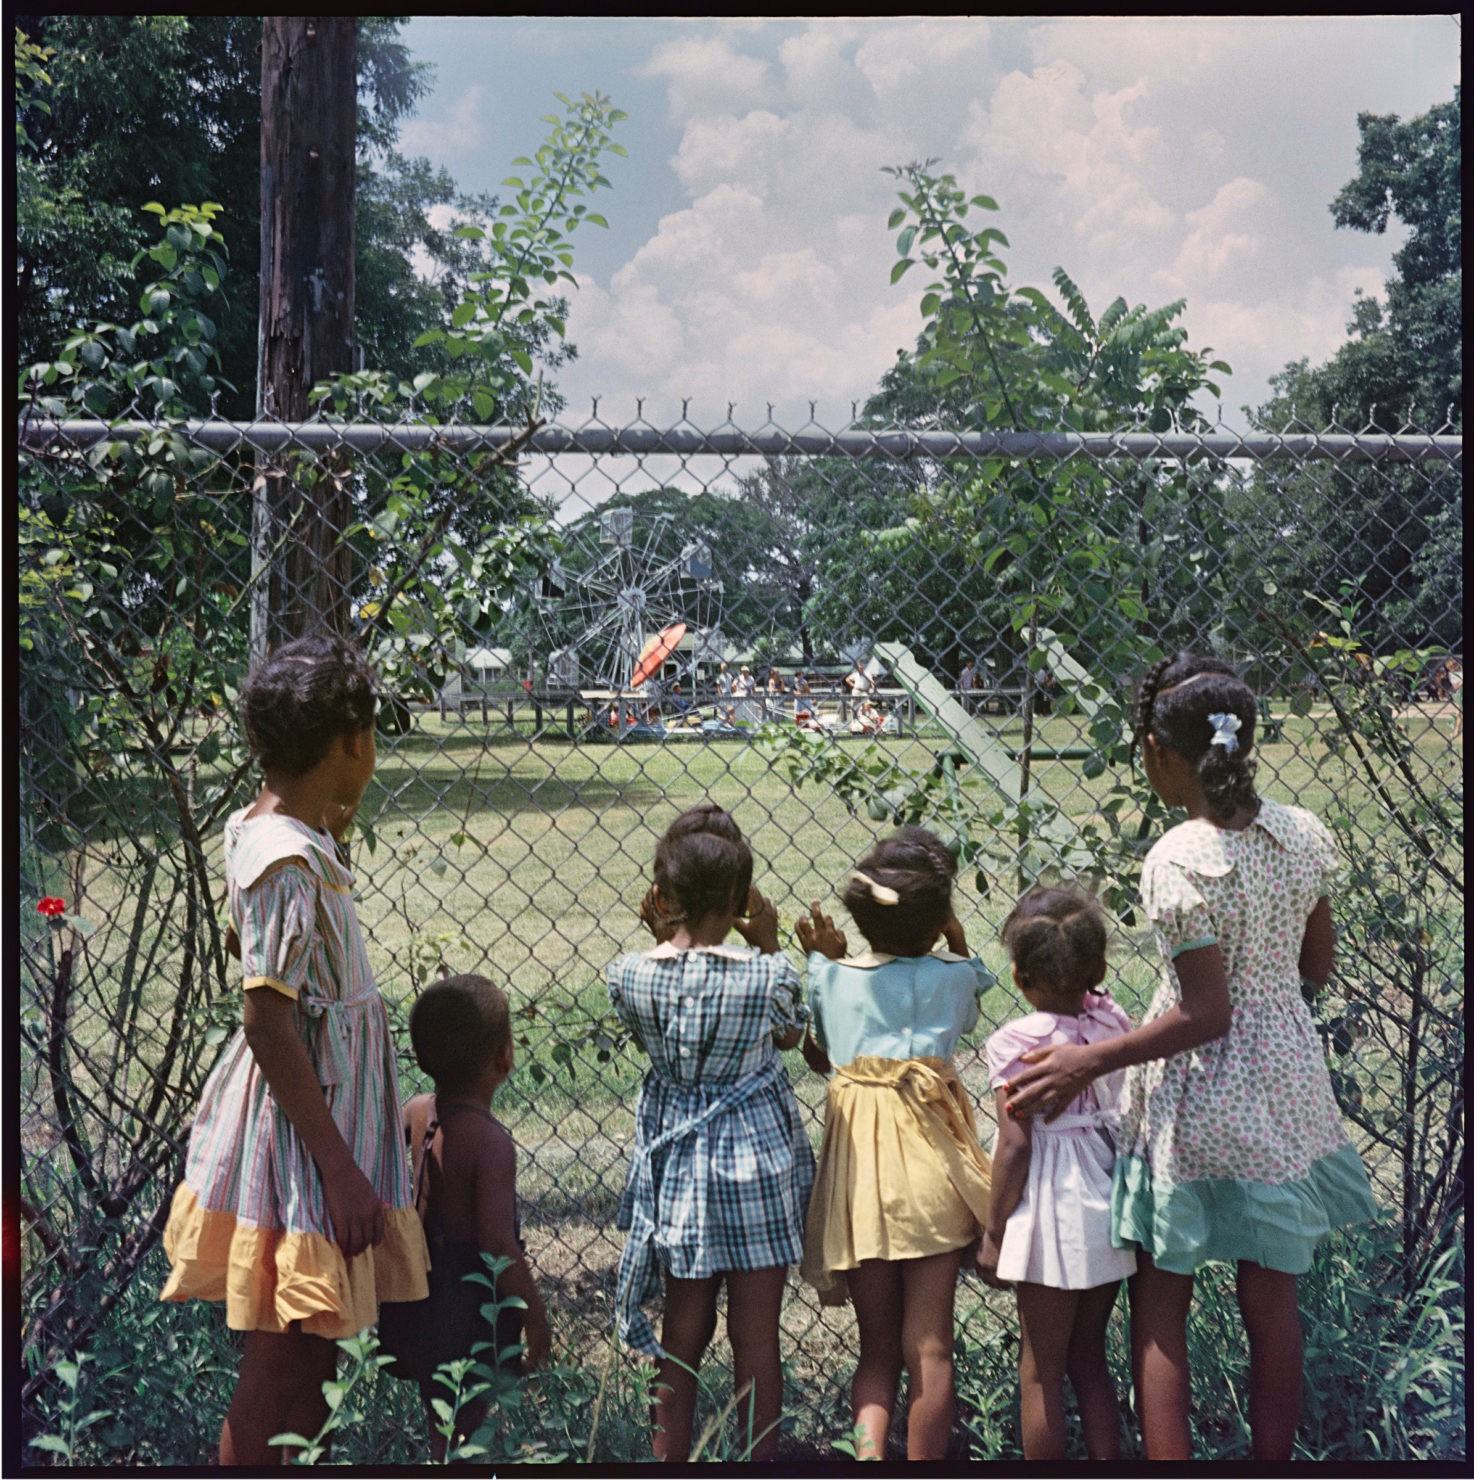 Little black girls in dresses peer through a chainlink fence at a playground.